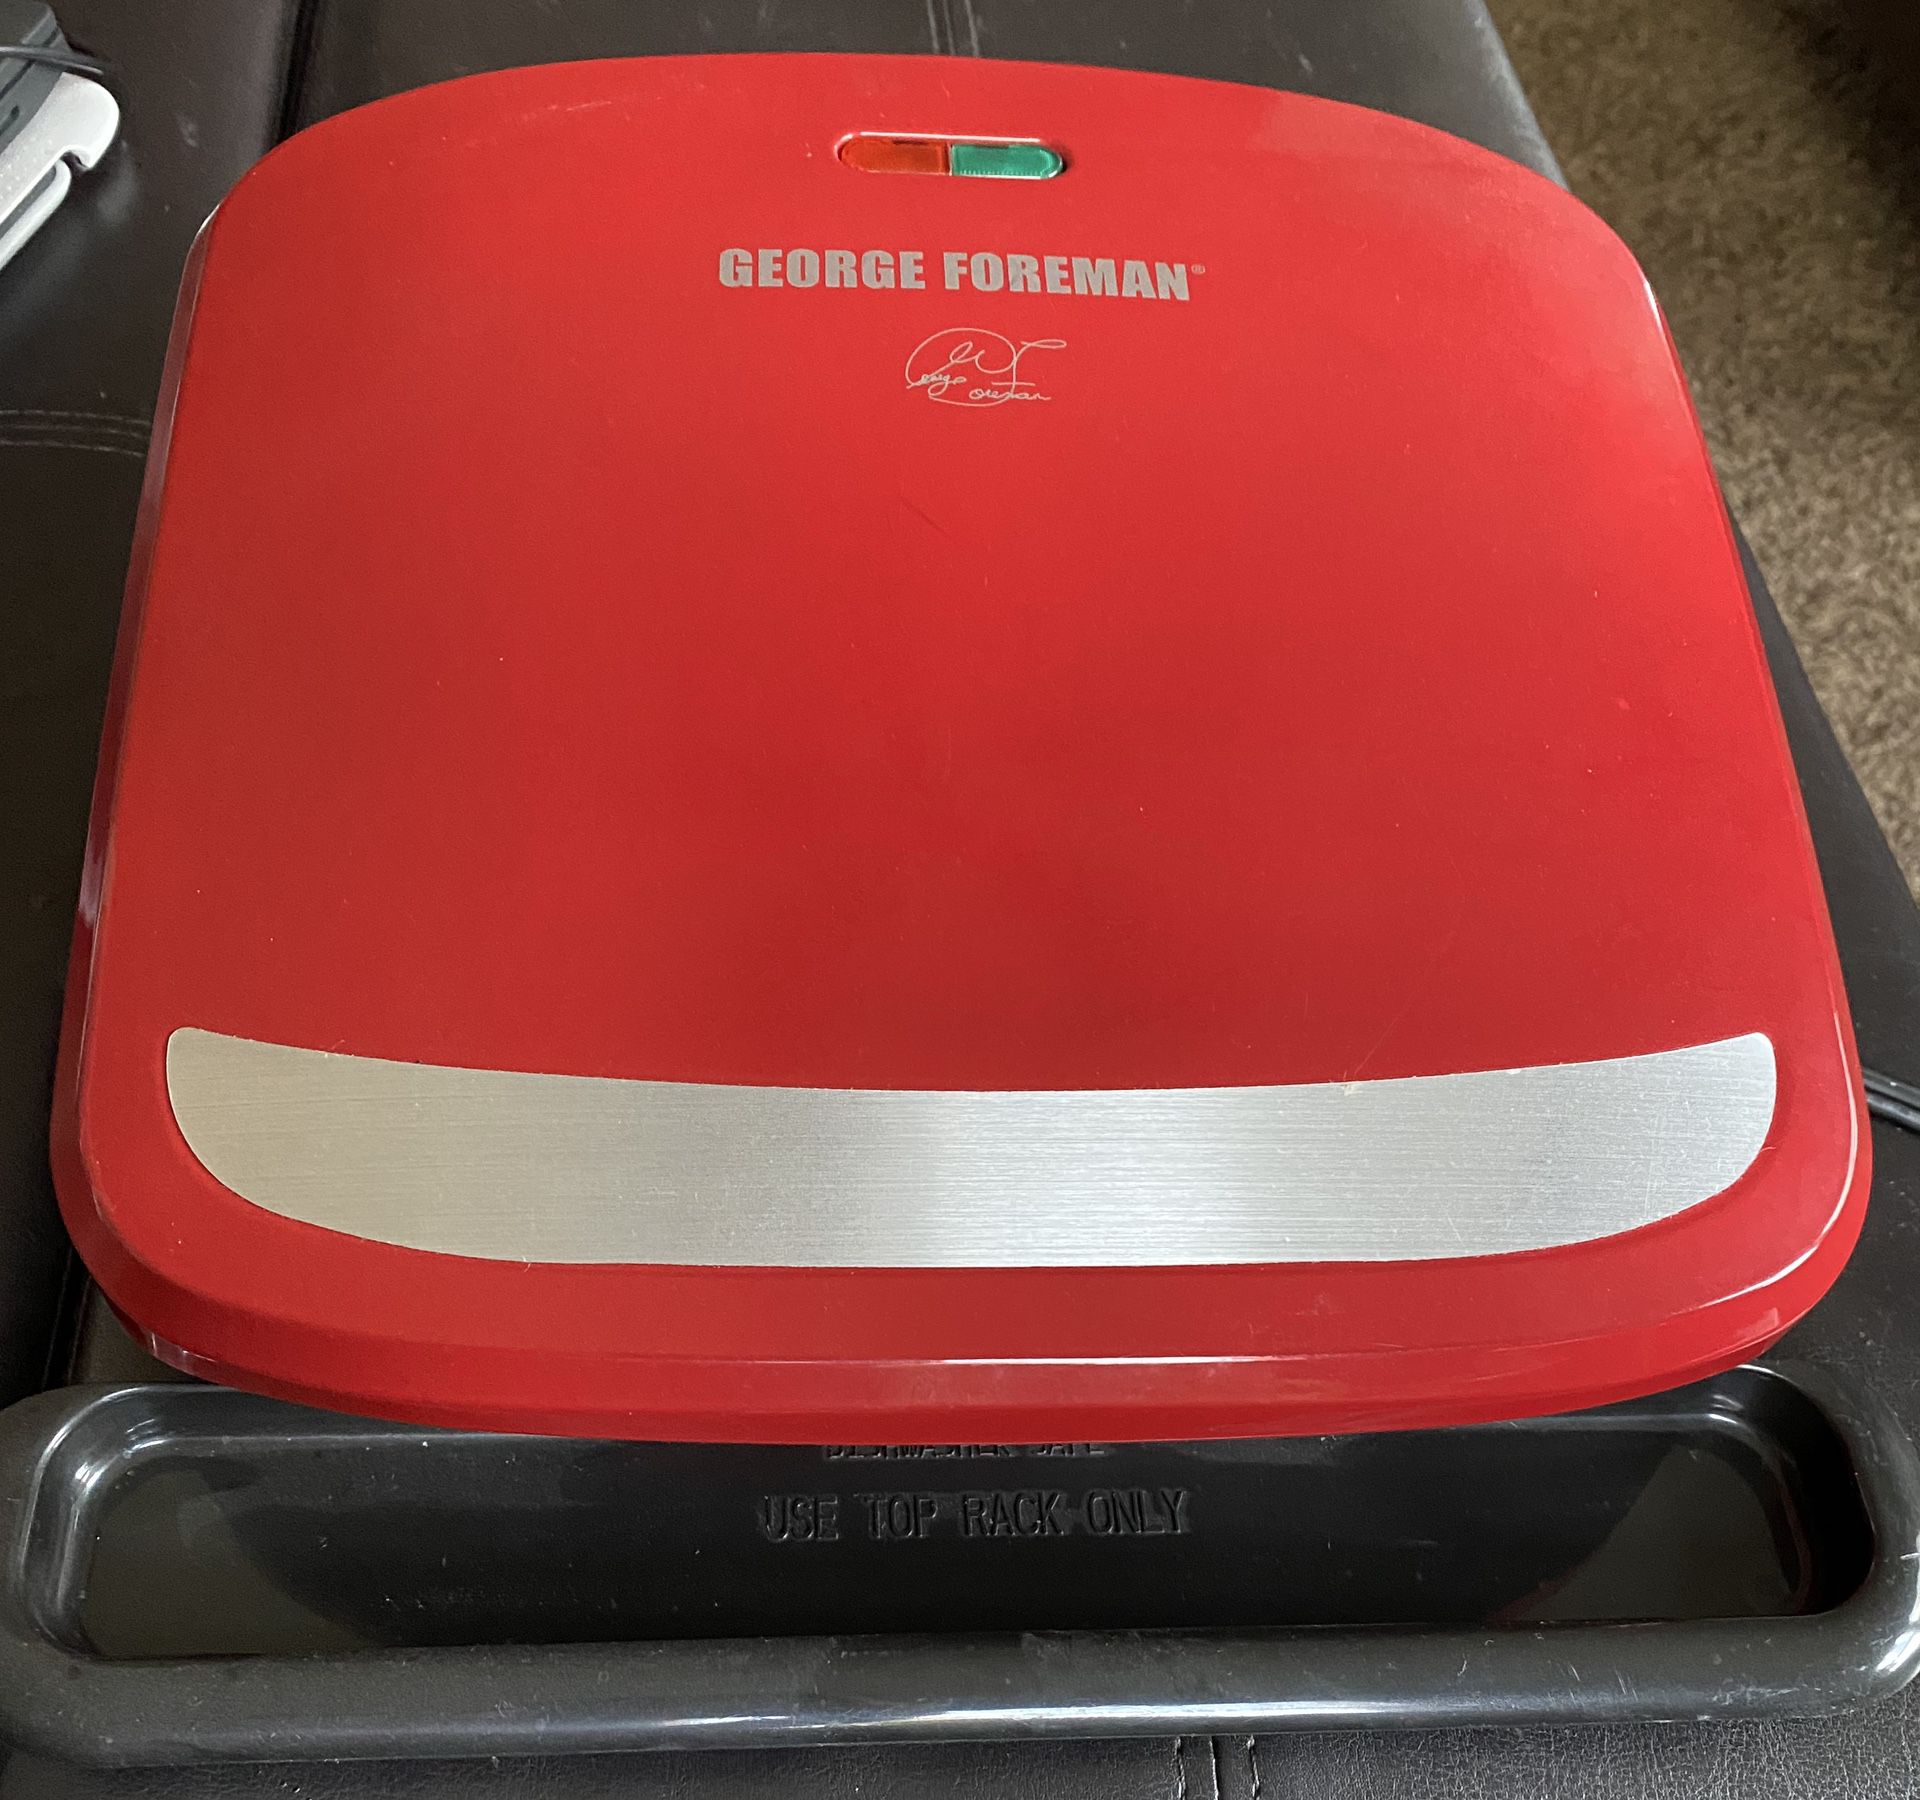 Gorge Forman 4 person grill